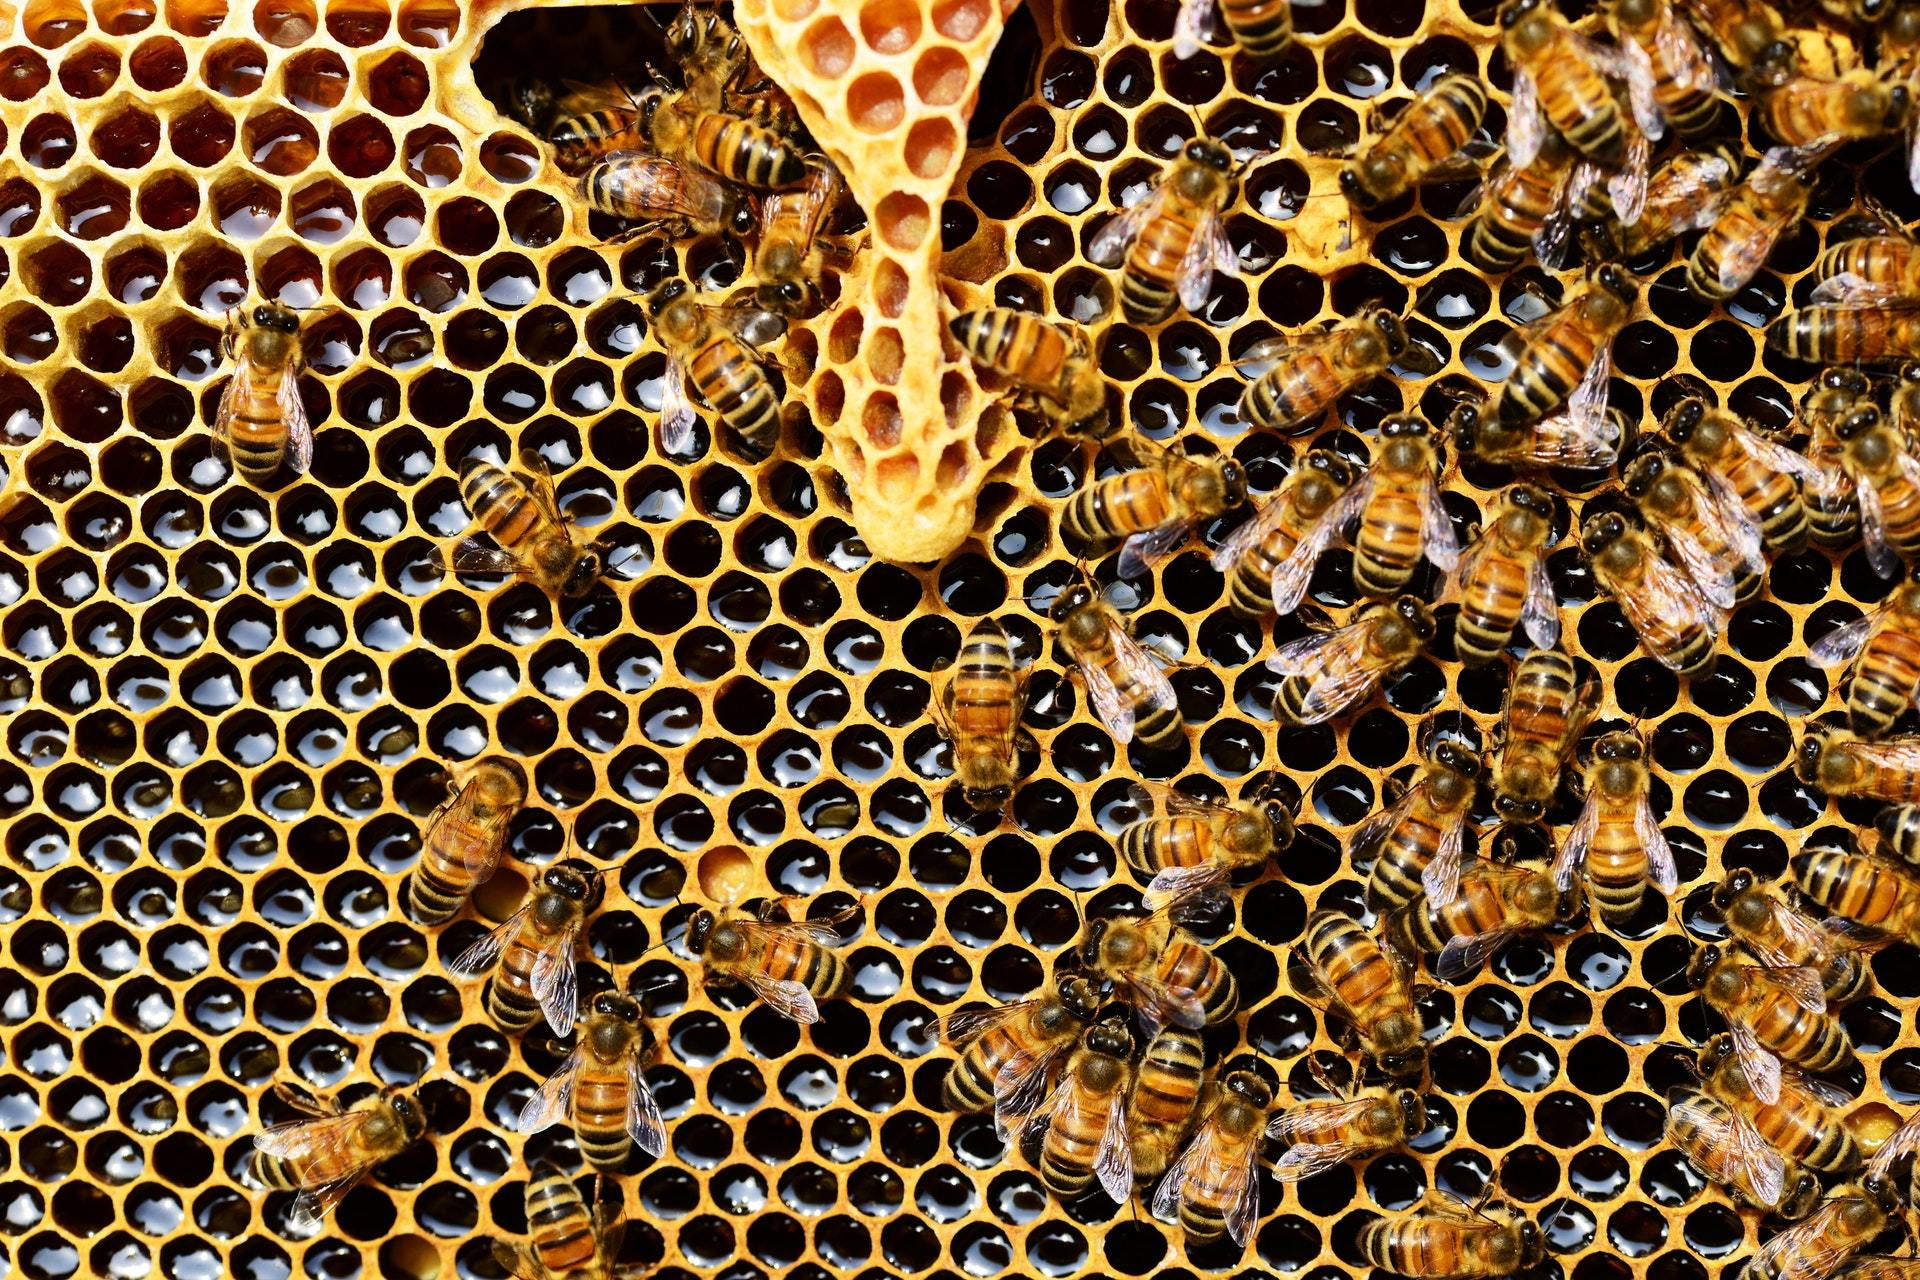 Adopt-A-Hive Update Letter - January 2019